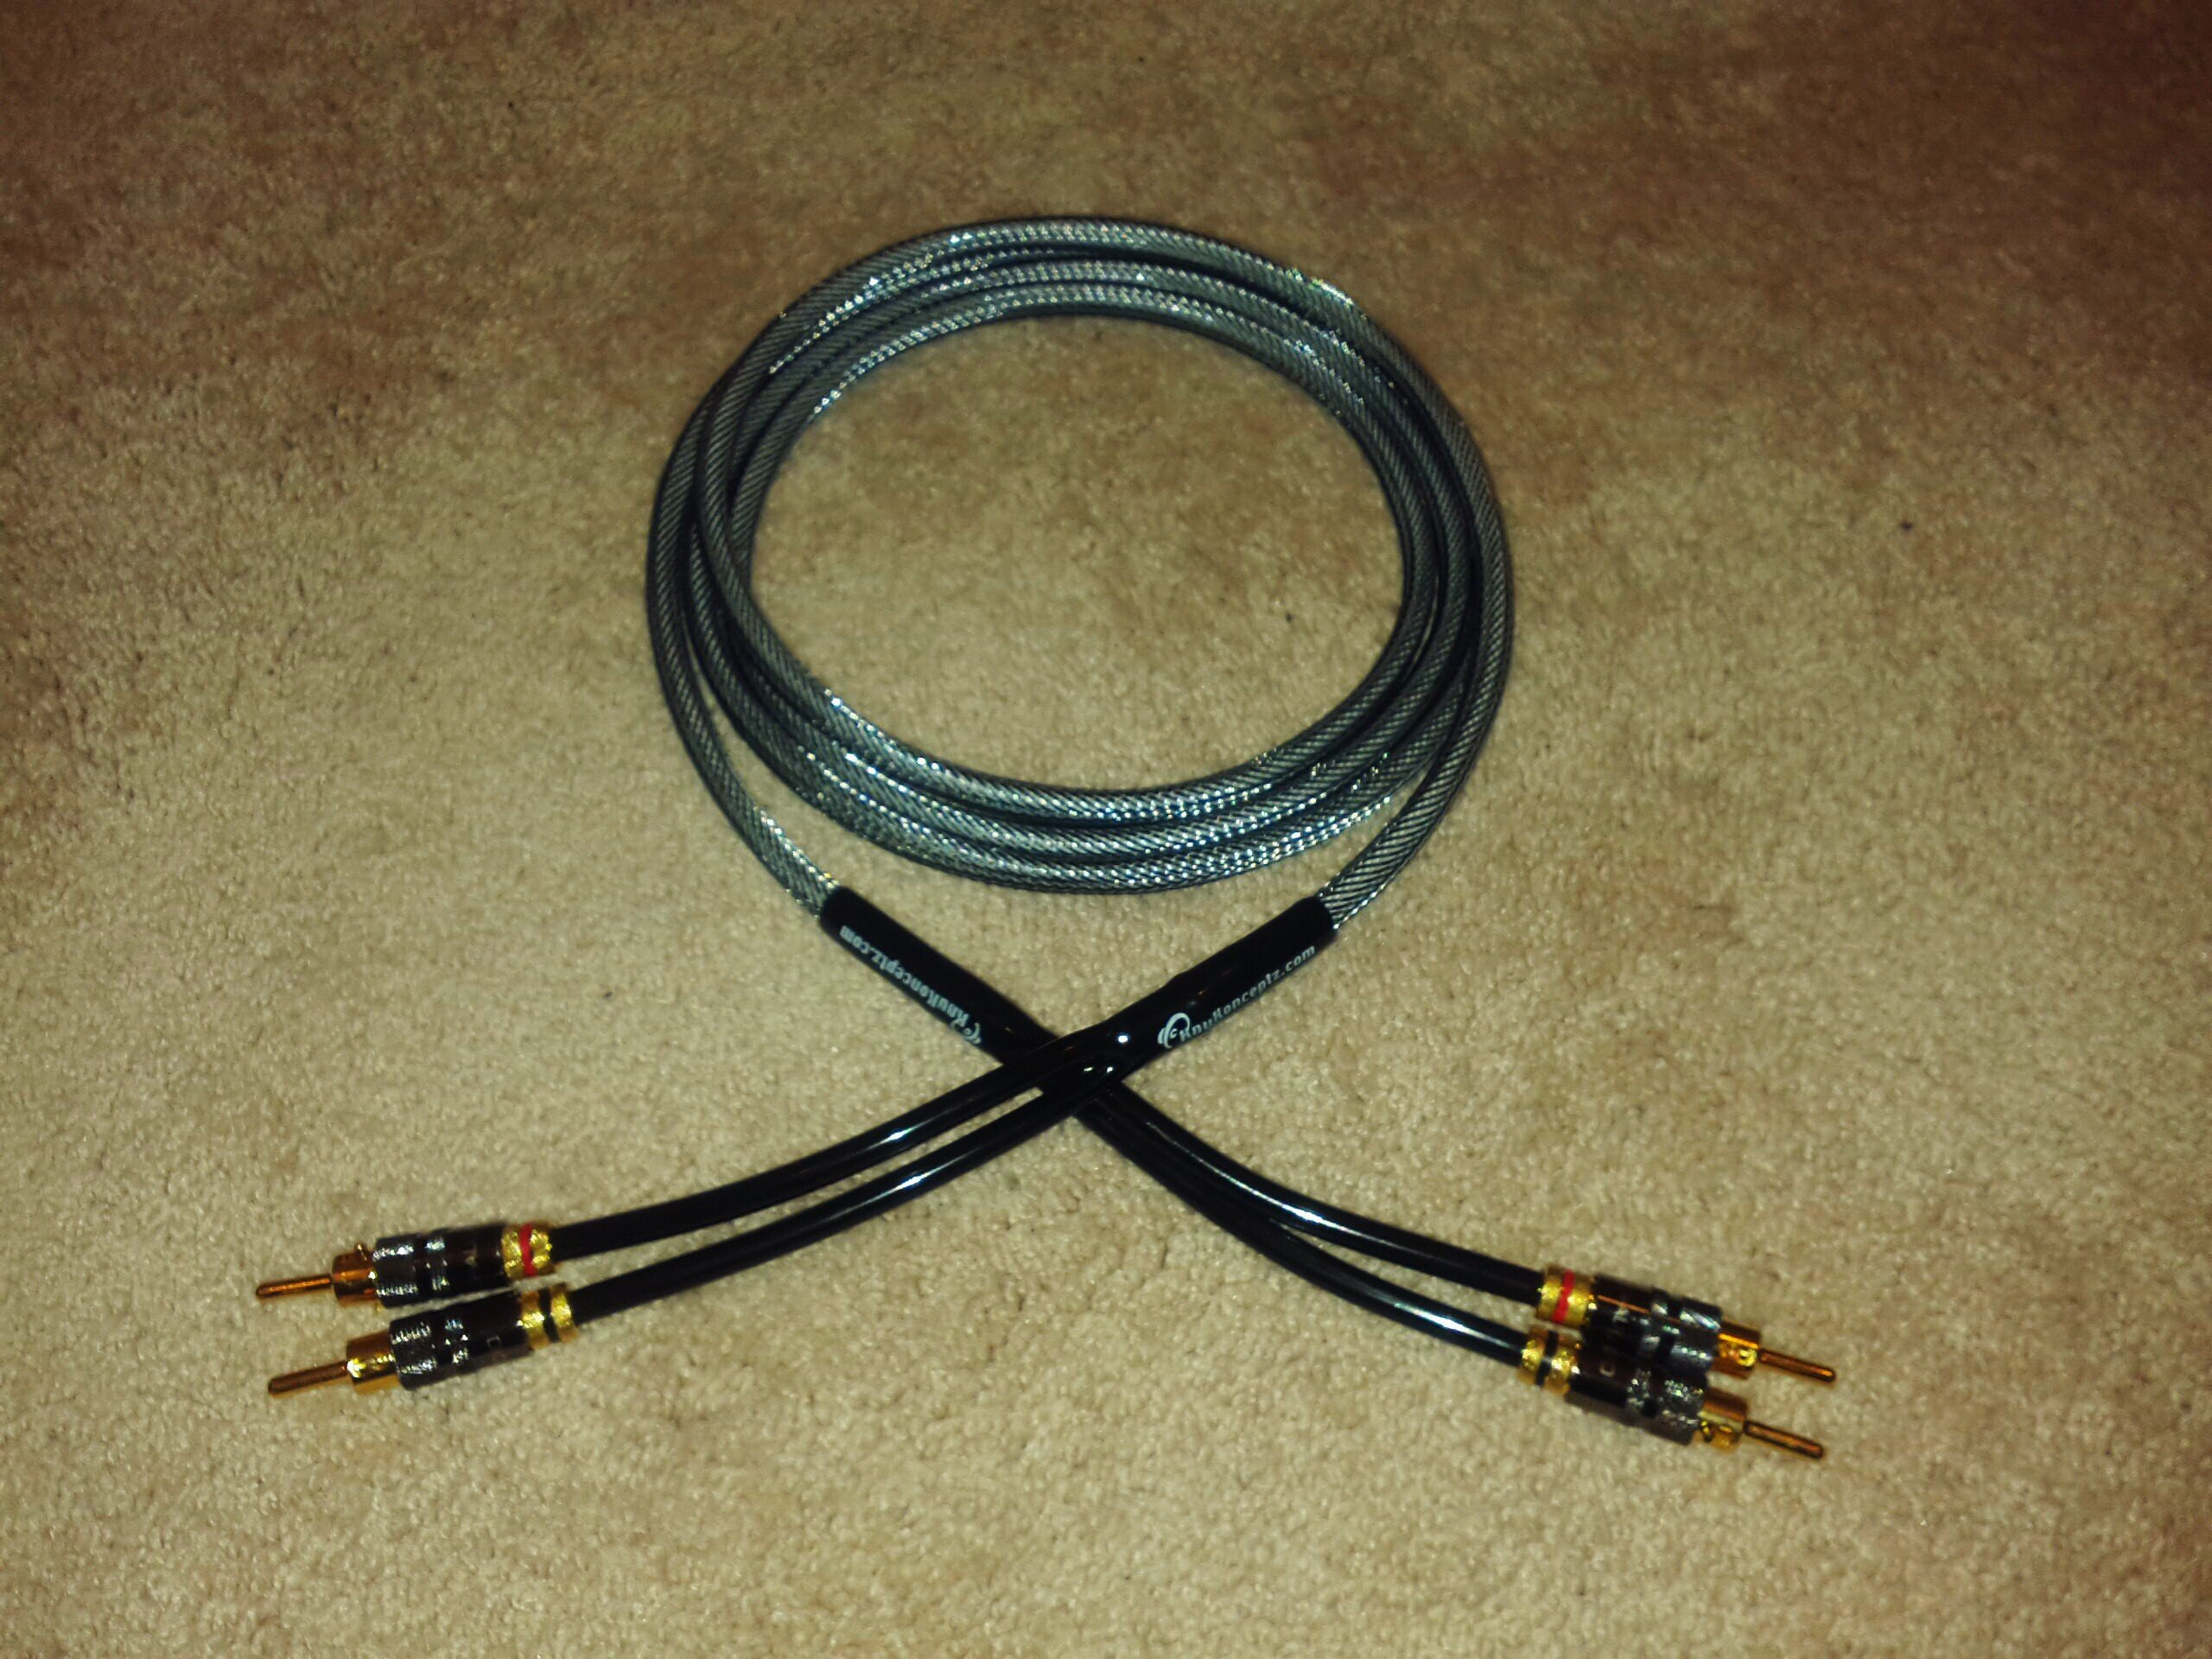 Have A Look At These Beauties How To Make Your Own High End Bypass Wiring Cabinet With Speaker Wire Avs Forum Home Theater Well My First Attempt Sleeving Monoprice Cl2 14 Awg Techflex Carbon Knukonceptz 12 Gauge Cable Pants And Gls Audio Locking Gen 4